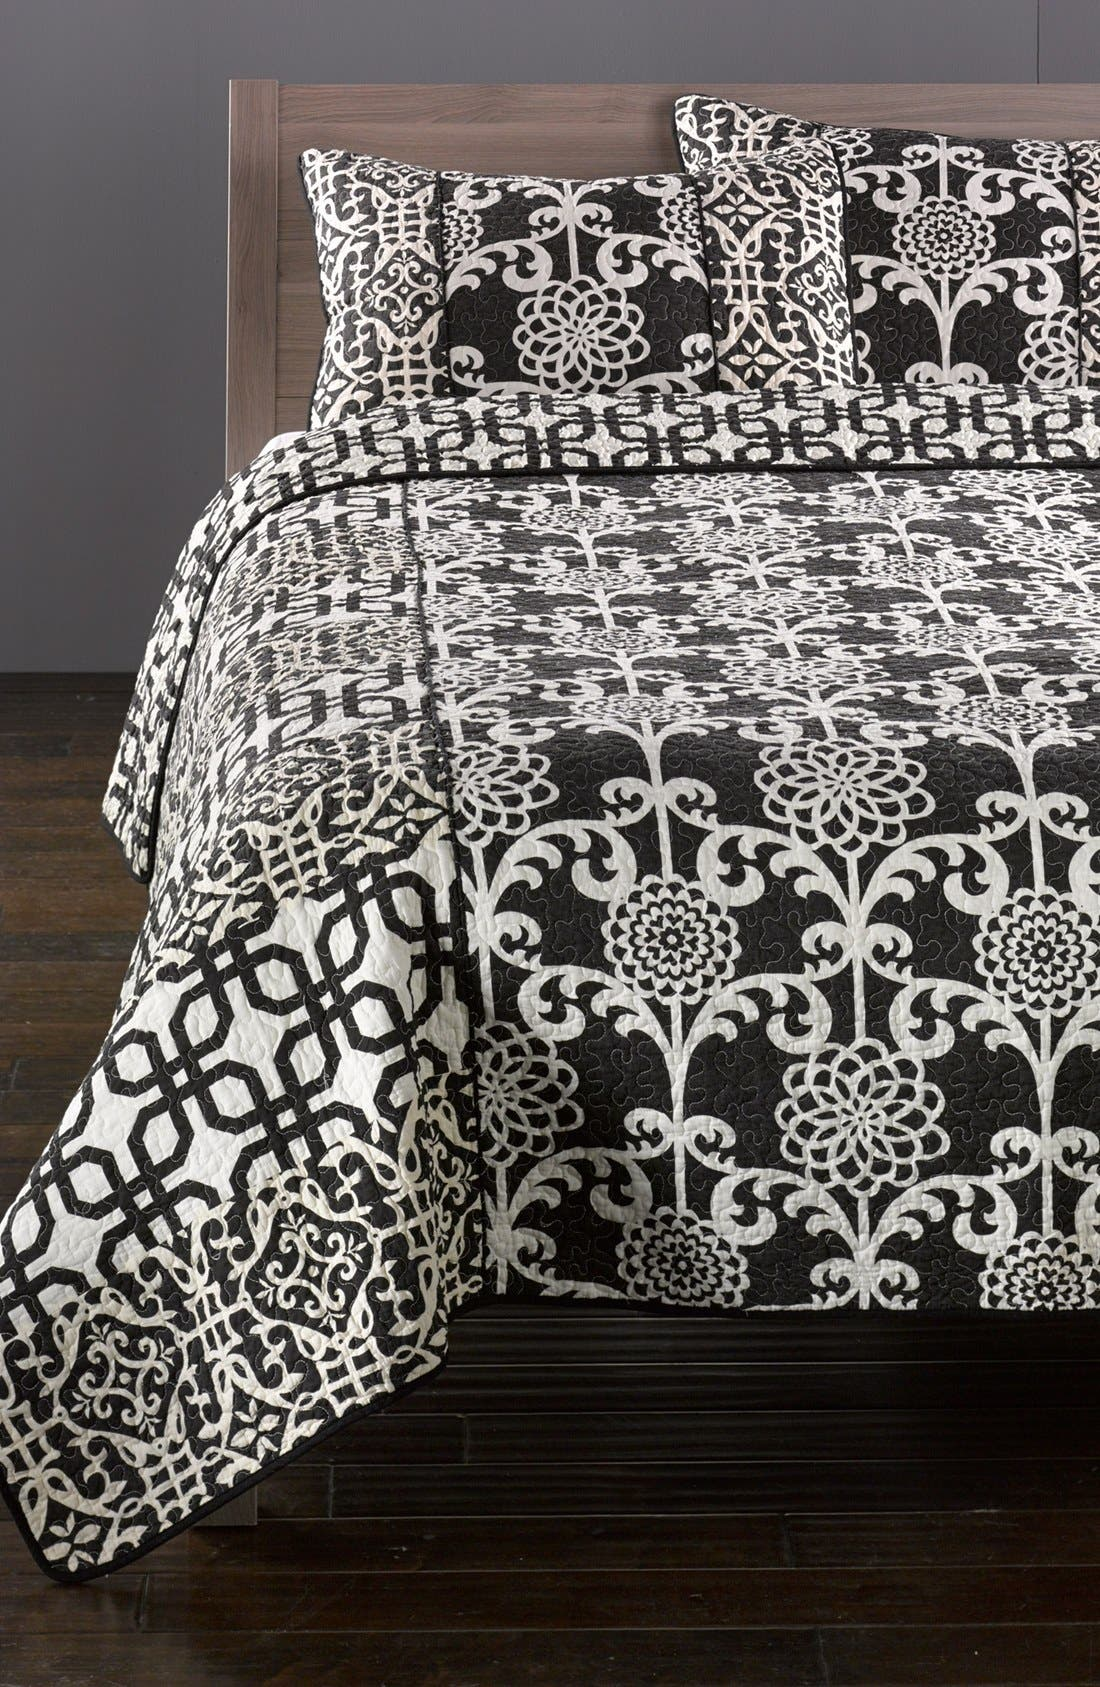 Main Image - Hedaya Home Fashions 'Carlton' Reversible Quilt